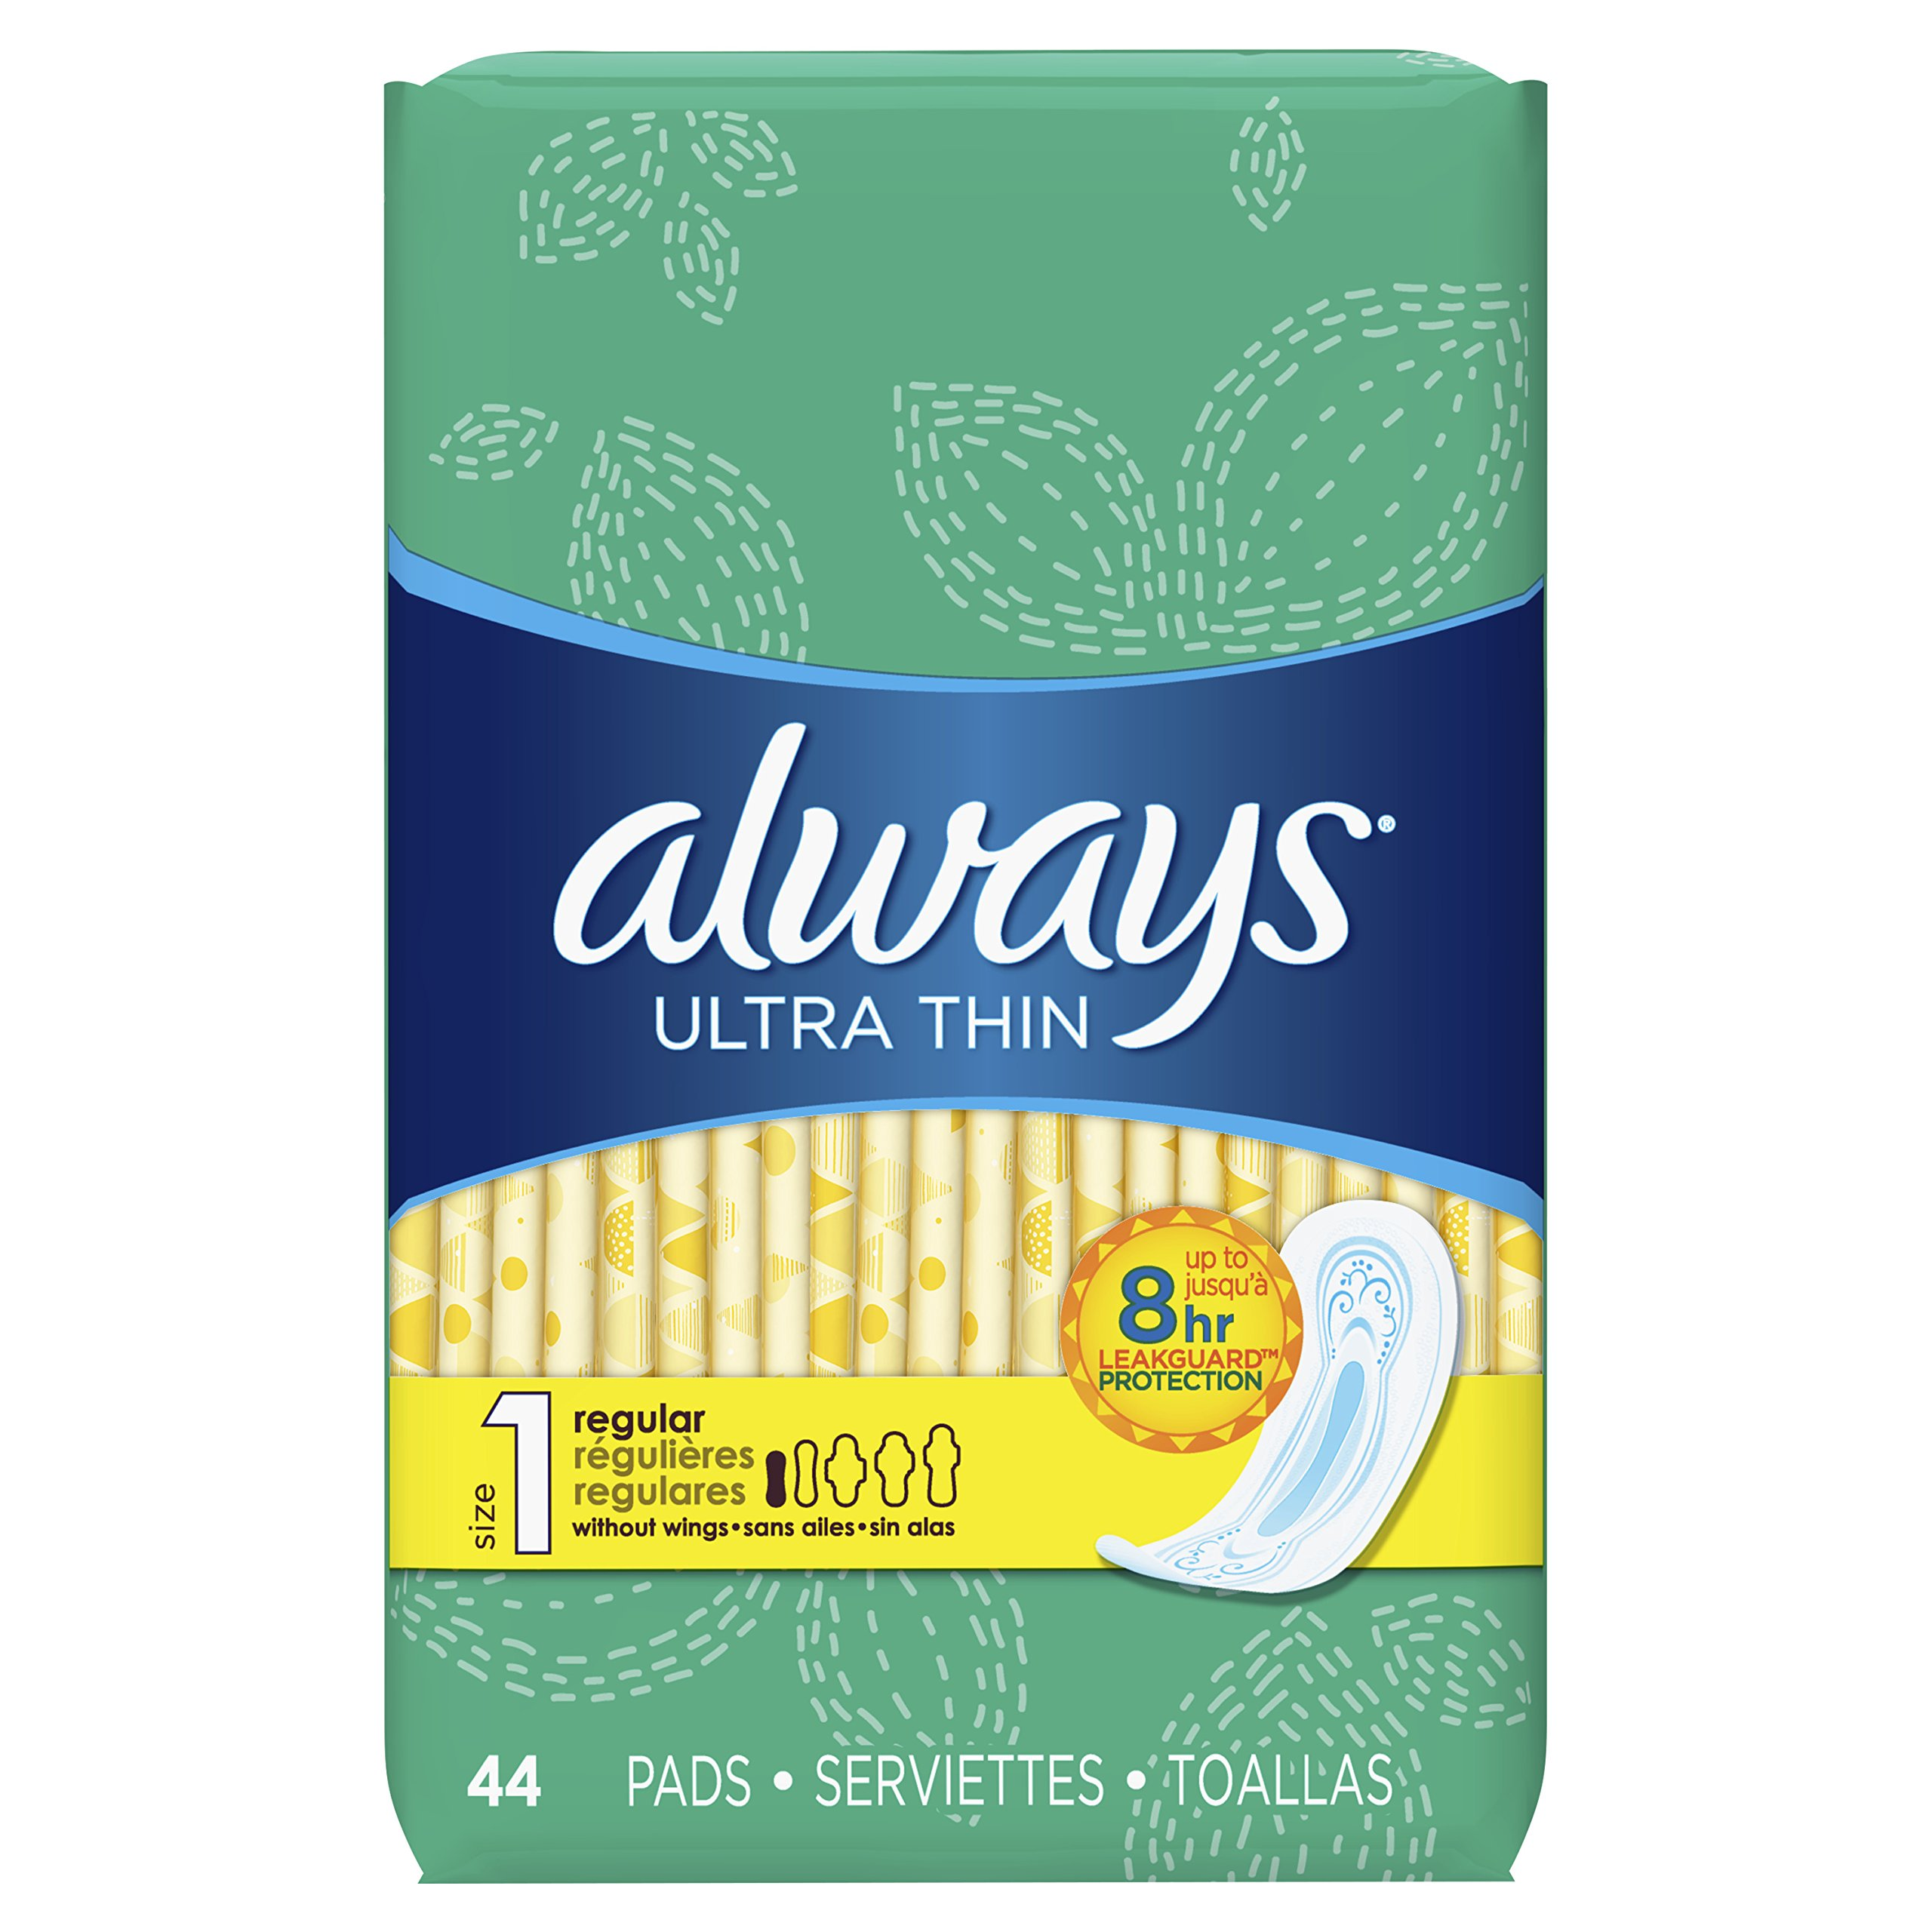 Always Ultra Thin Feminine Pads for Women, Size 1, Regular Absorbency, Unscented,